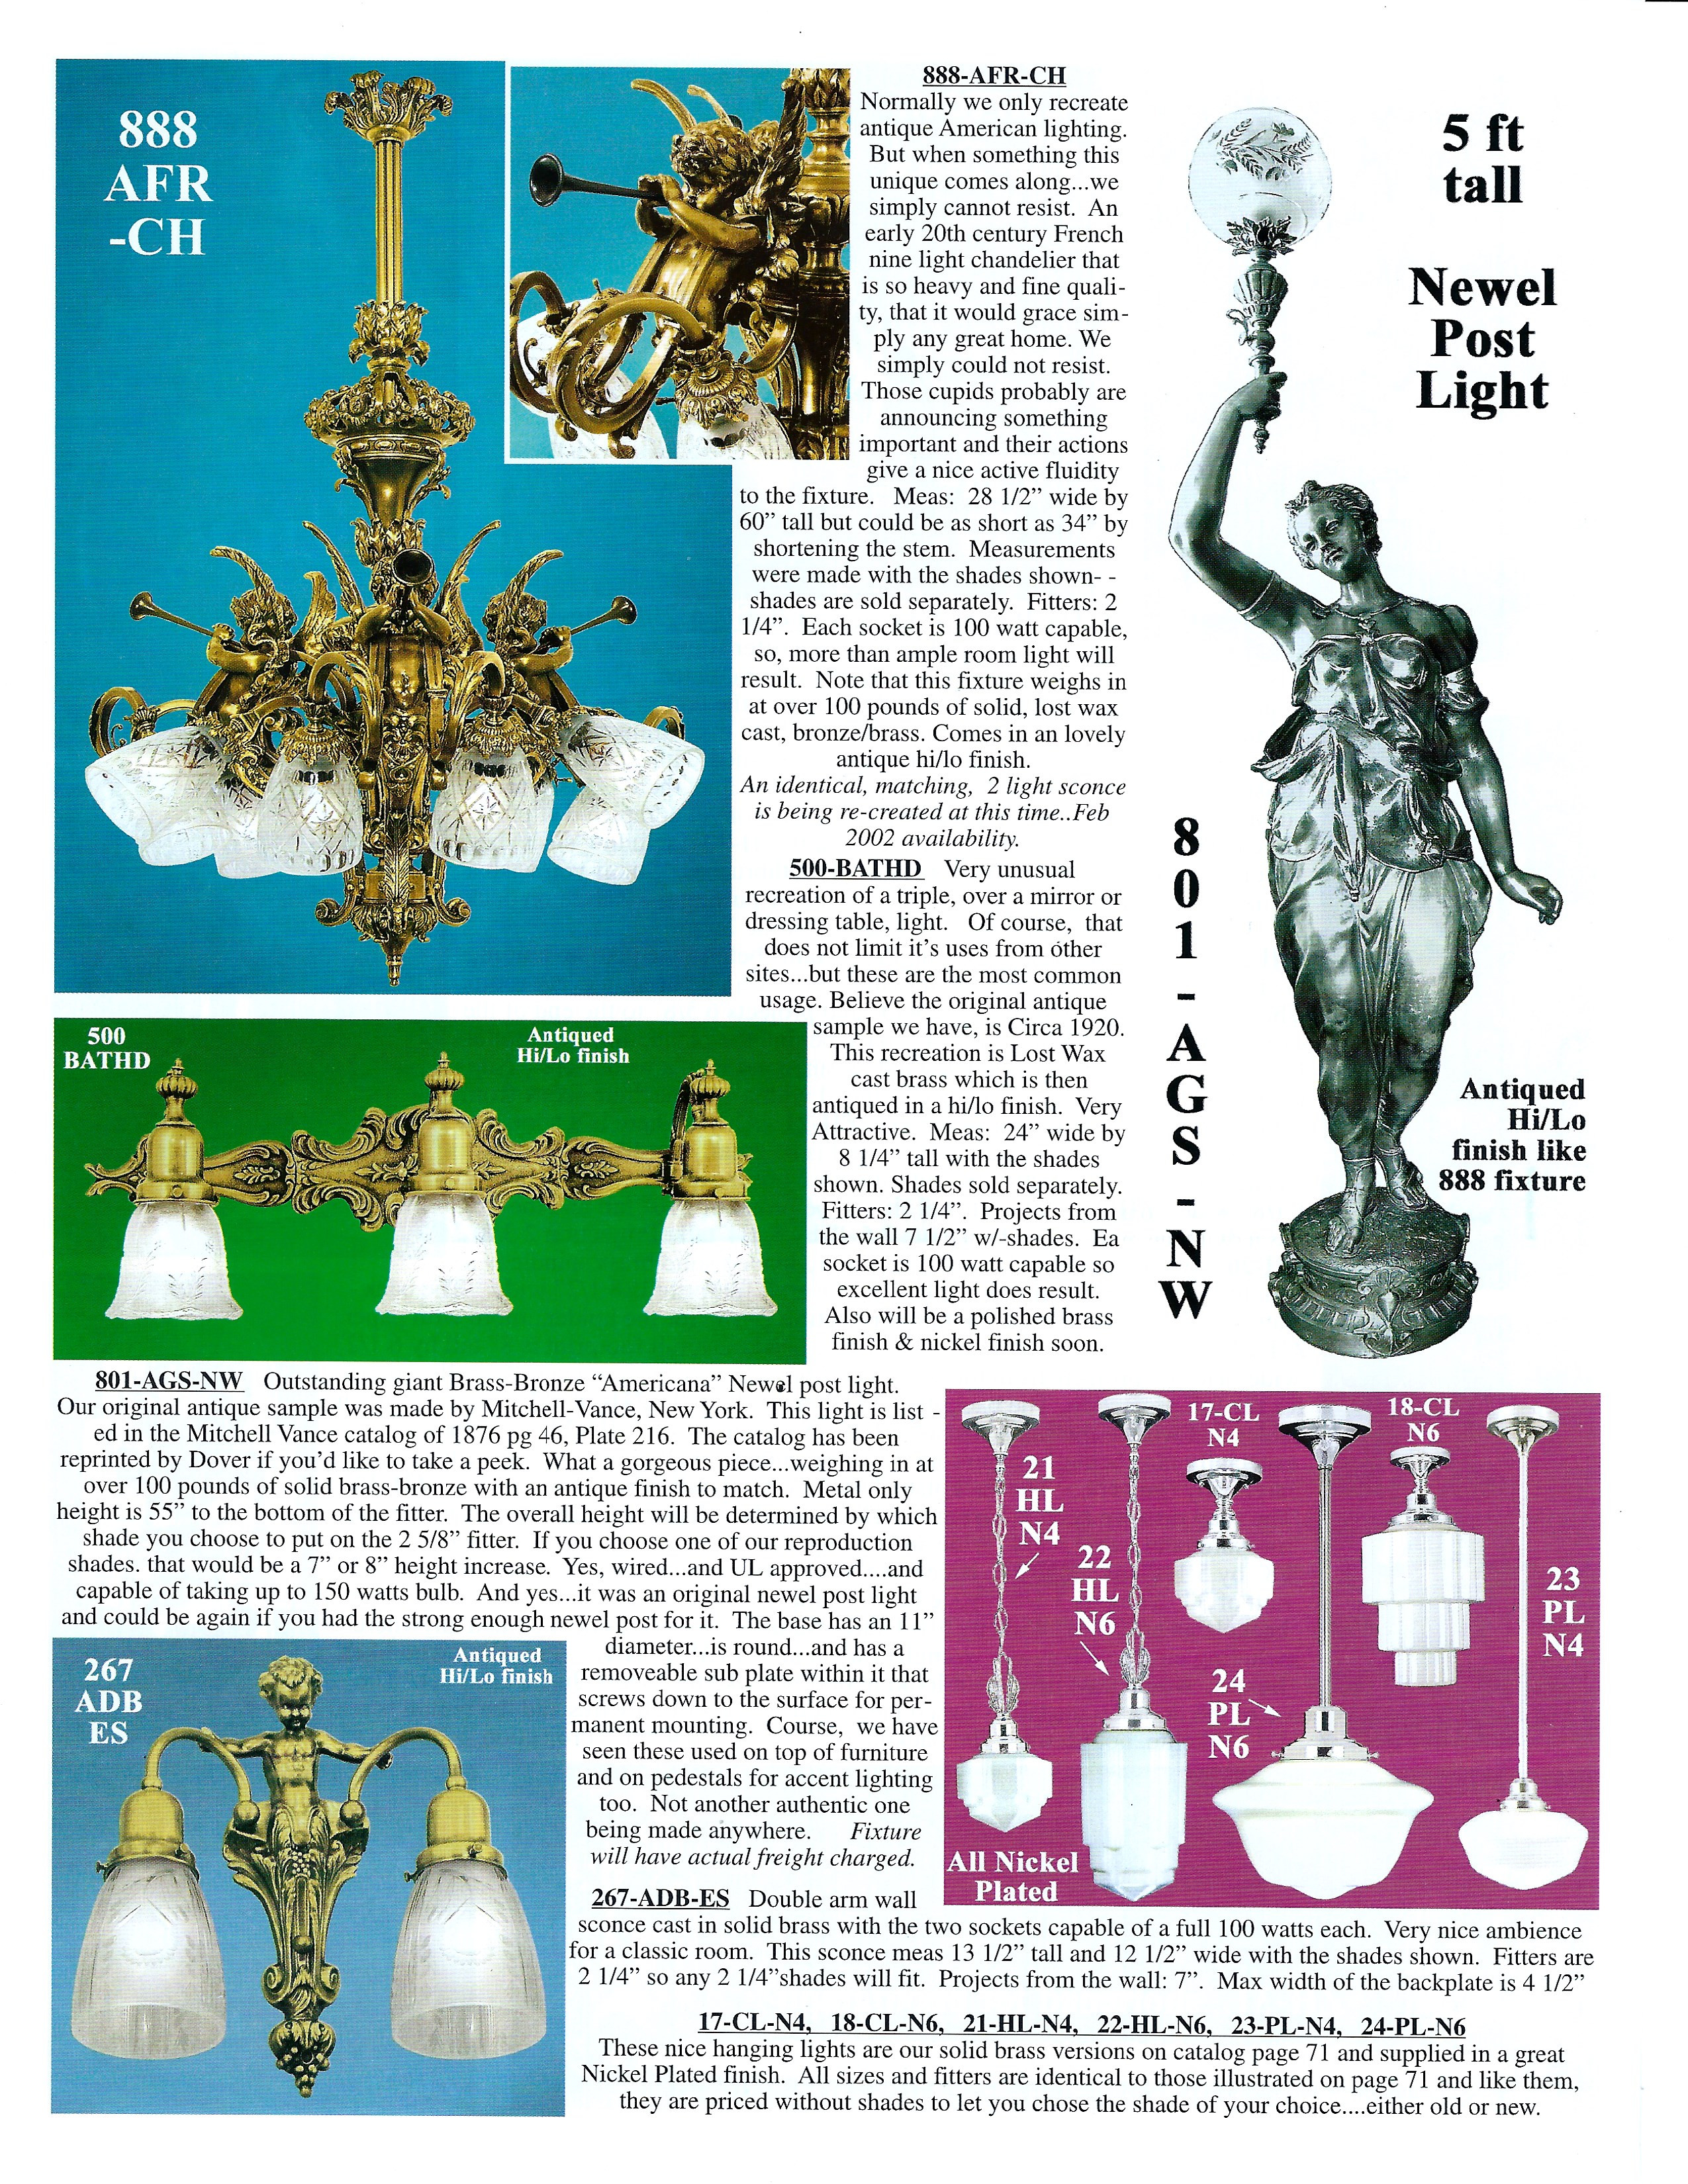 Catalog page 62